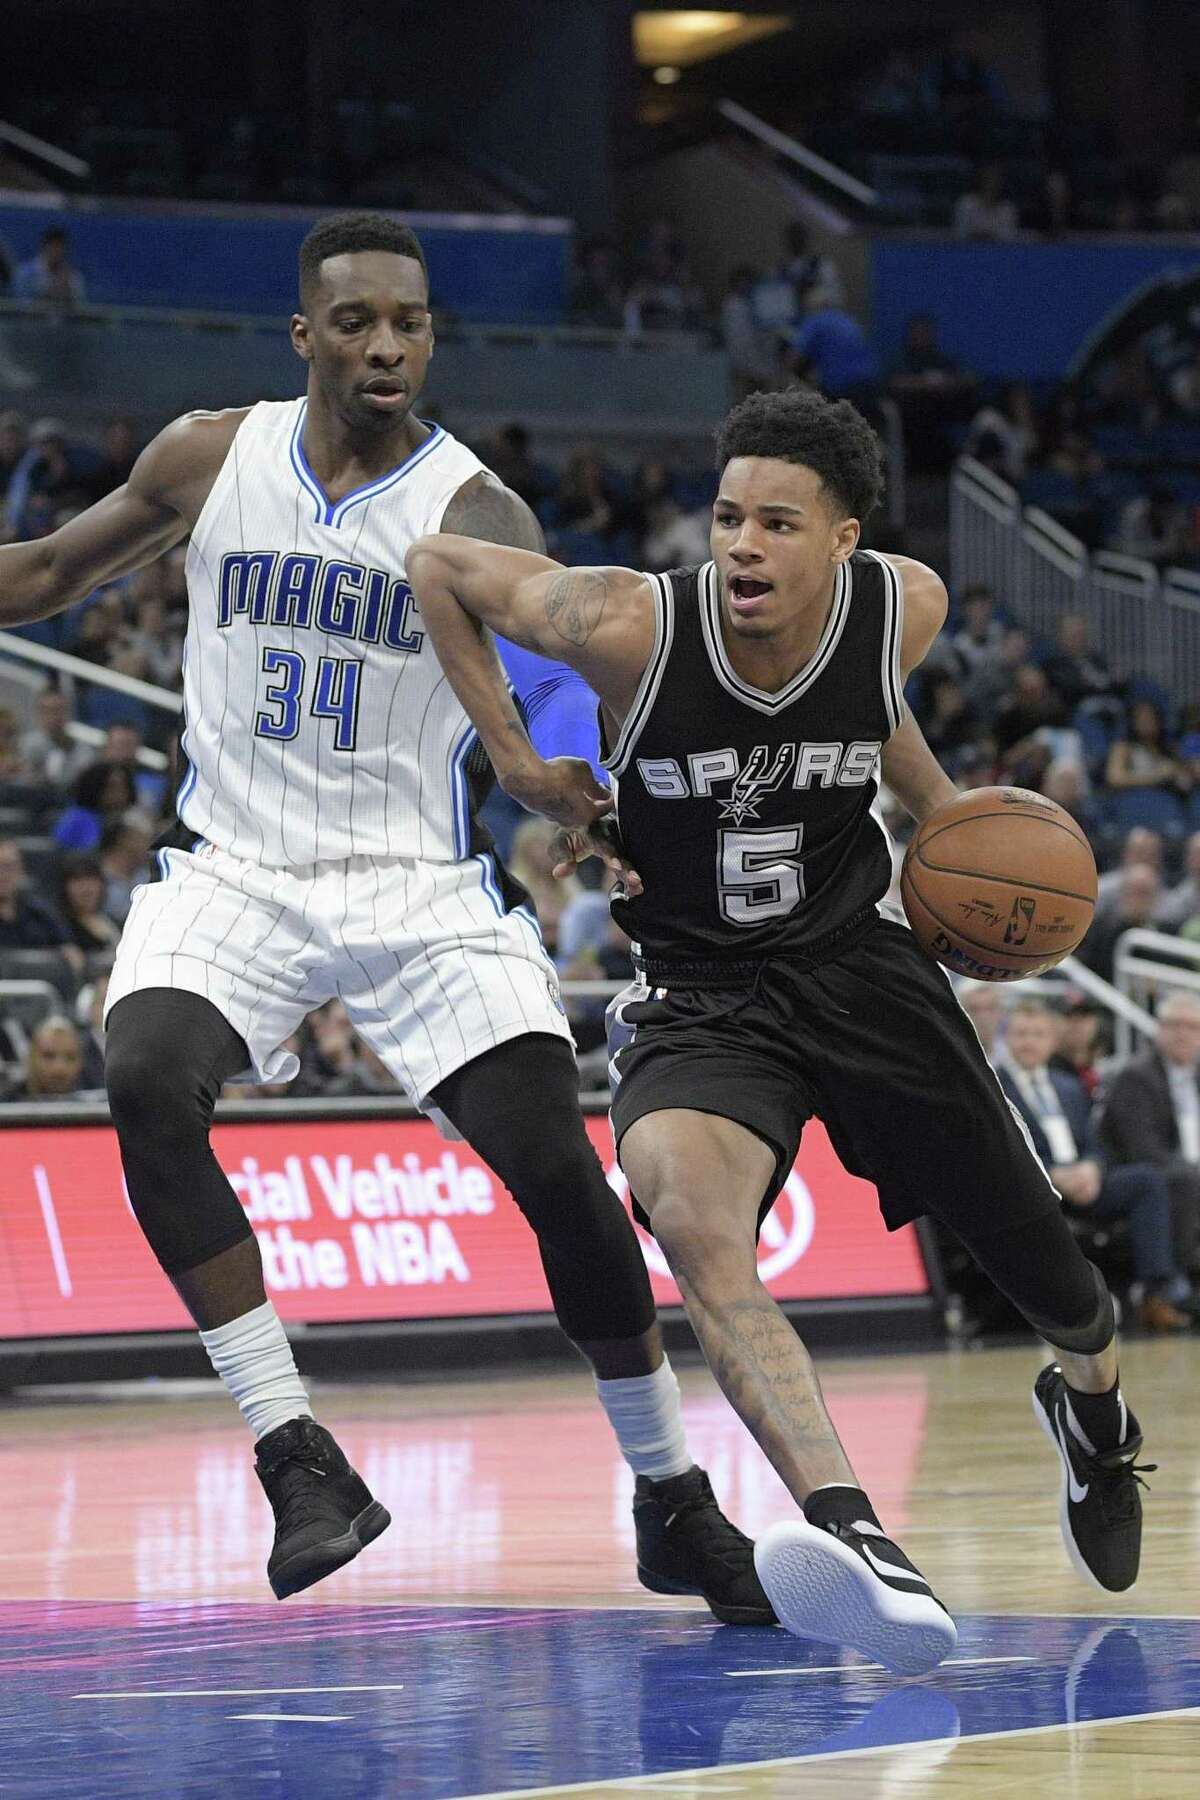 San Antonio Spurs guard Dejounte Murray (5) drives to the basket in front of Orlando Magic forward Jeff Green (34) during the second half of an NBA basketball game in Orlando, Fla., Wednesday, Feb. 15, 2017. The Spurs won 107-79. (AP Photo/Phelan M. Ebenhack)